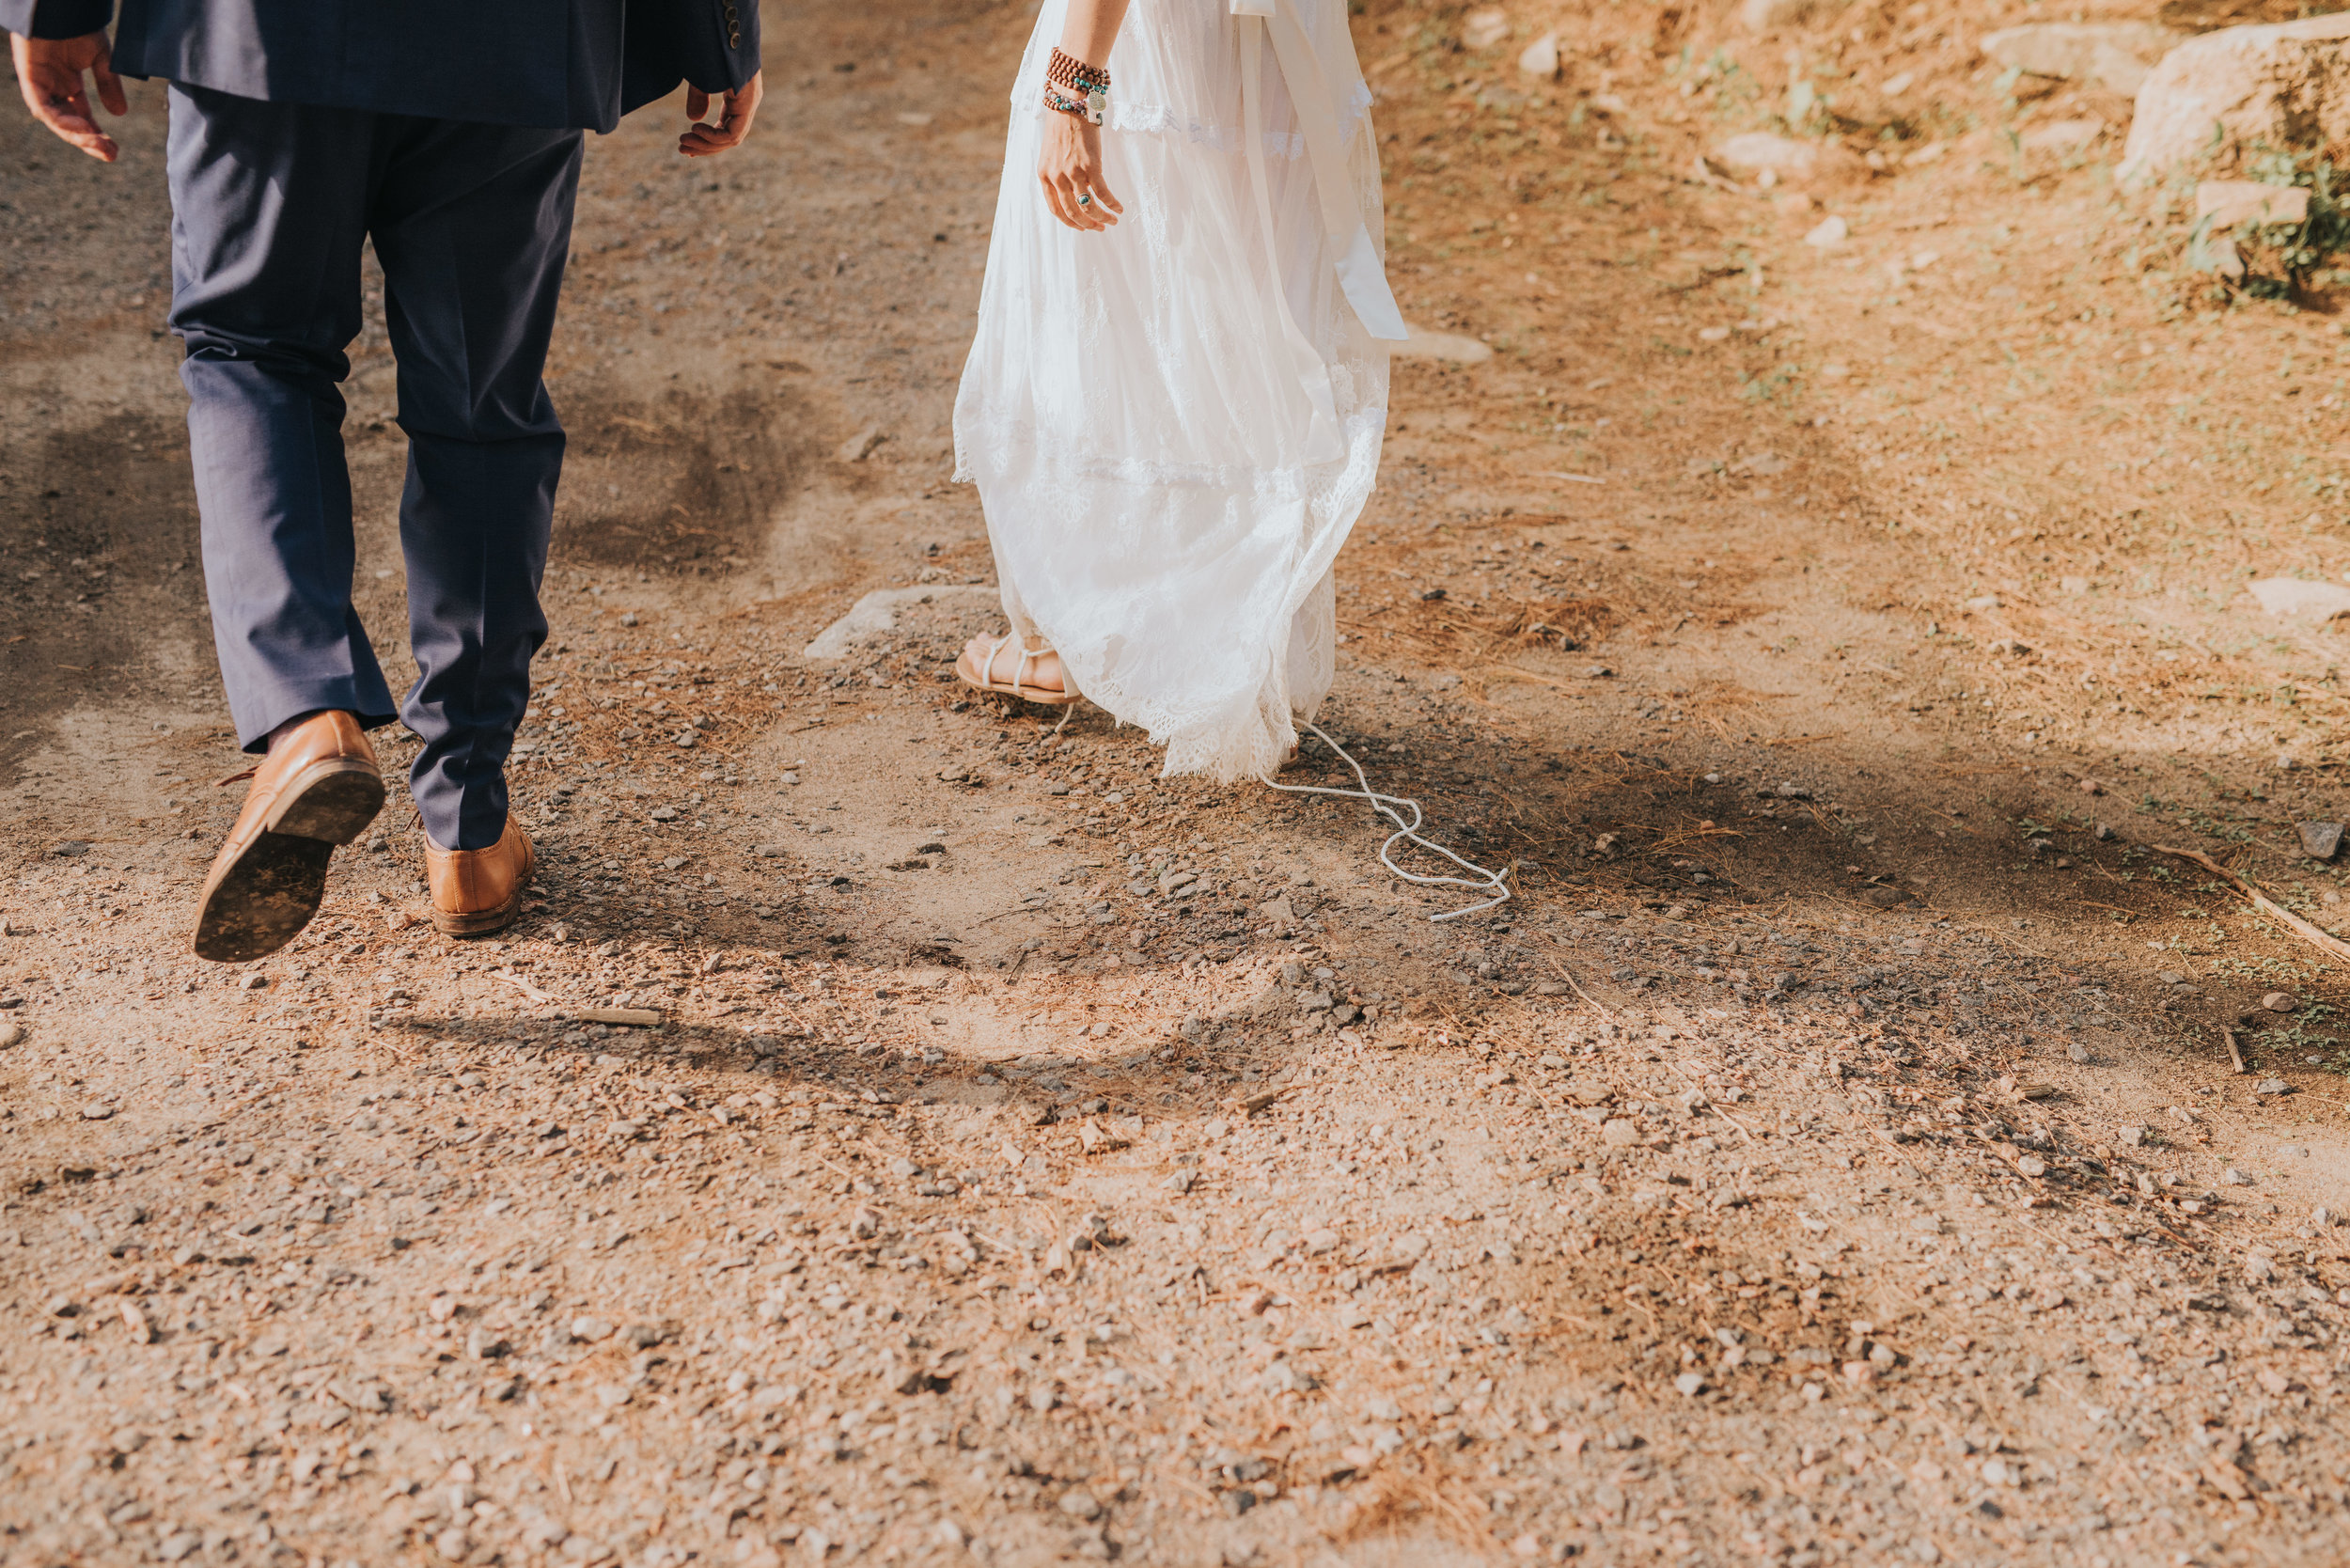 bride-groom-walking-together-rustic-cabin-toronto-bohemian-boho-outdoor-summer-wedding-documentary-wedding-photography-by-willow-birch-photo.jpg